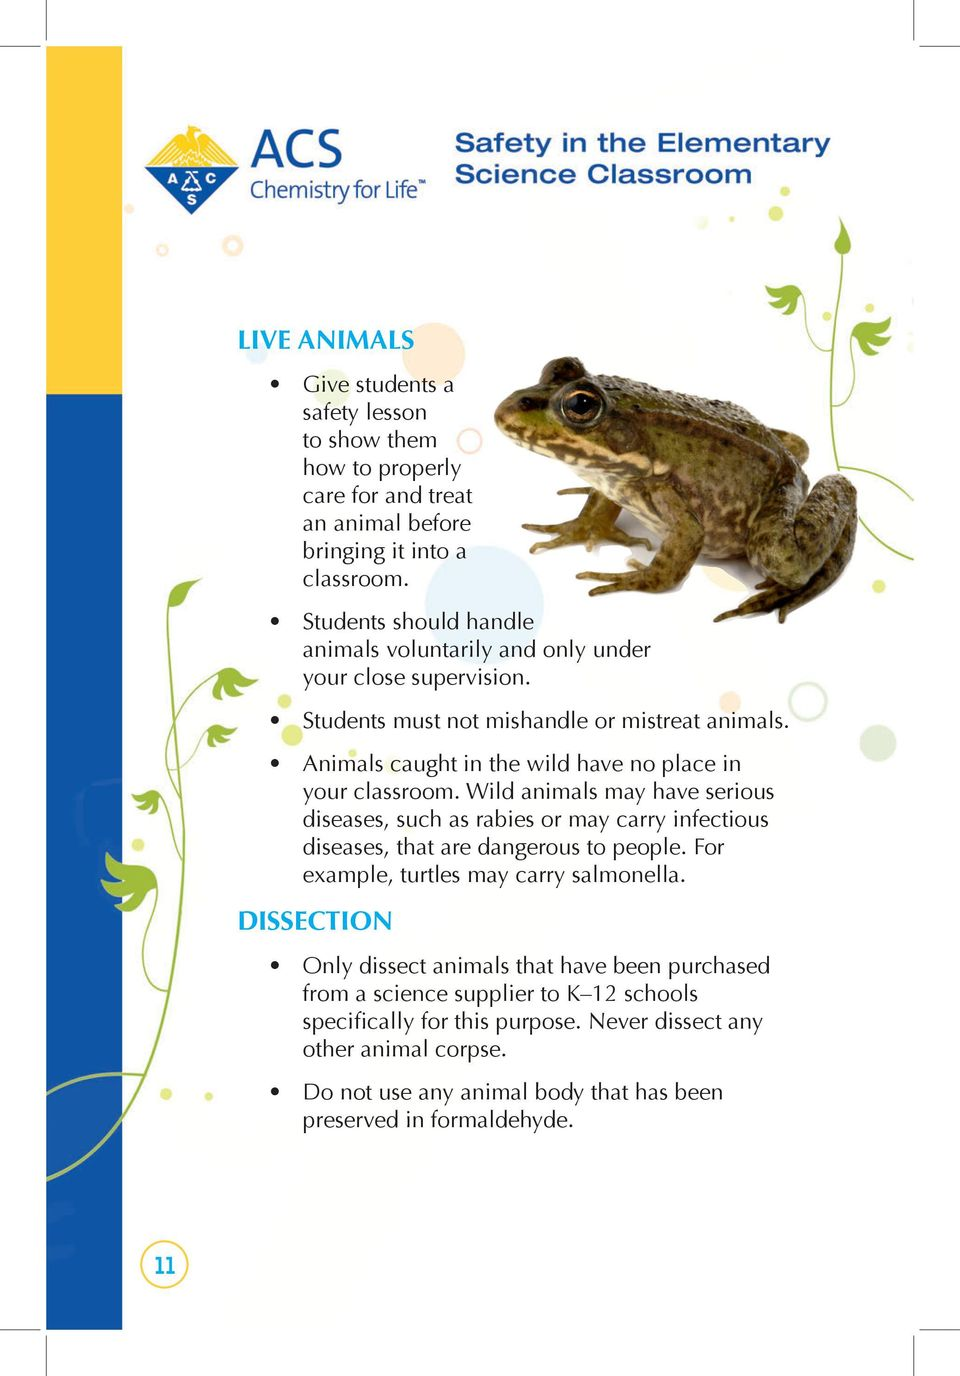 Animals caught in the wild have no place in your classroom. Wild animals may have serious diseases, such as rabies or may carry infectious diseases, that are dangerous to people.